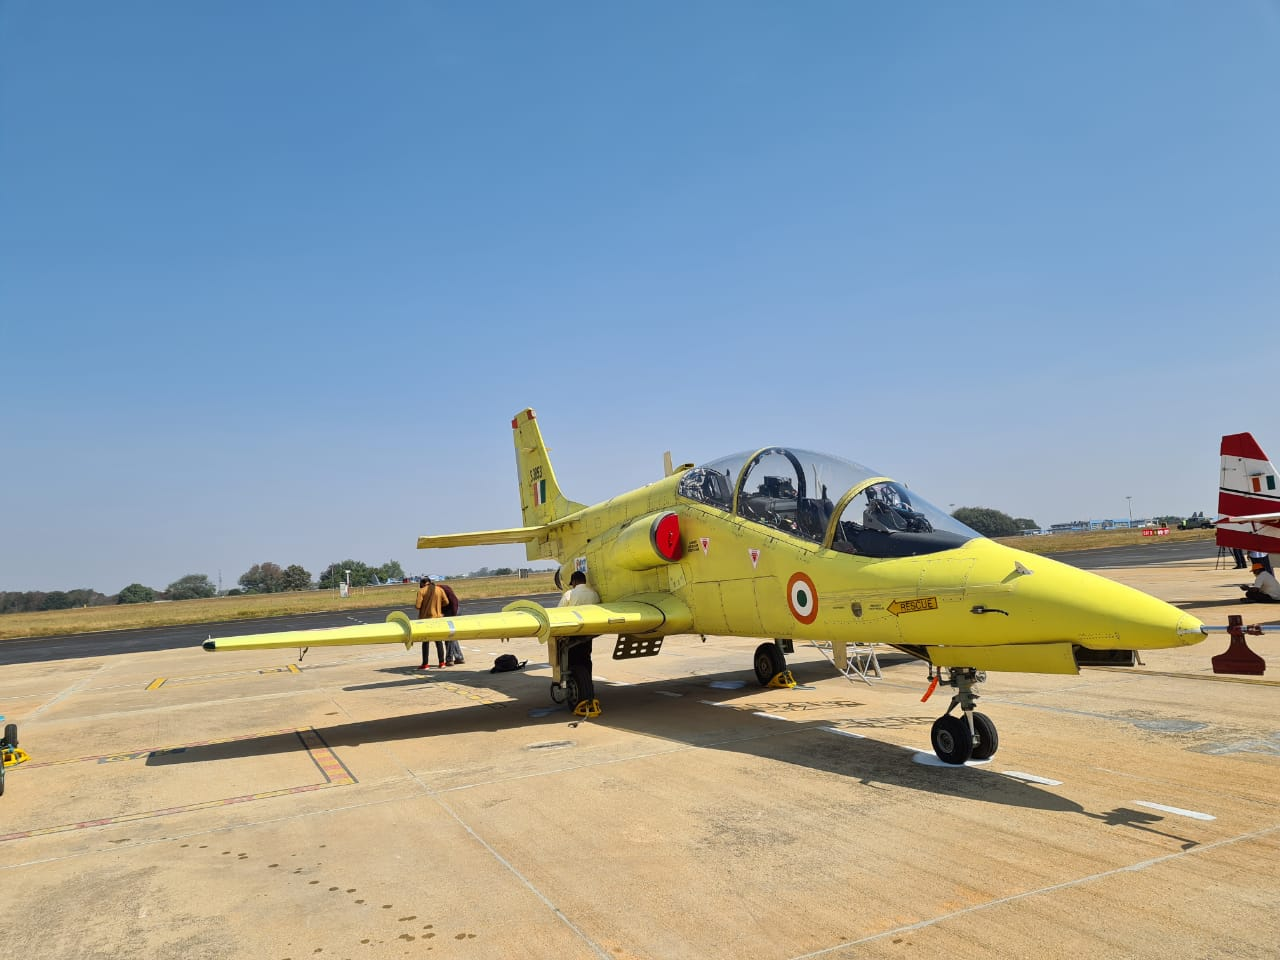 AL-55I engine installed on Indian HJT-36 trainer aircraft demonstrated at the exhibition